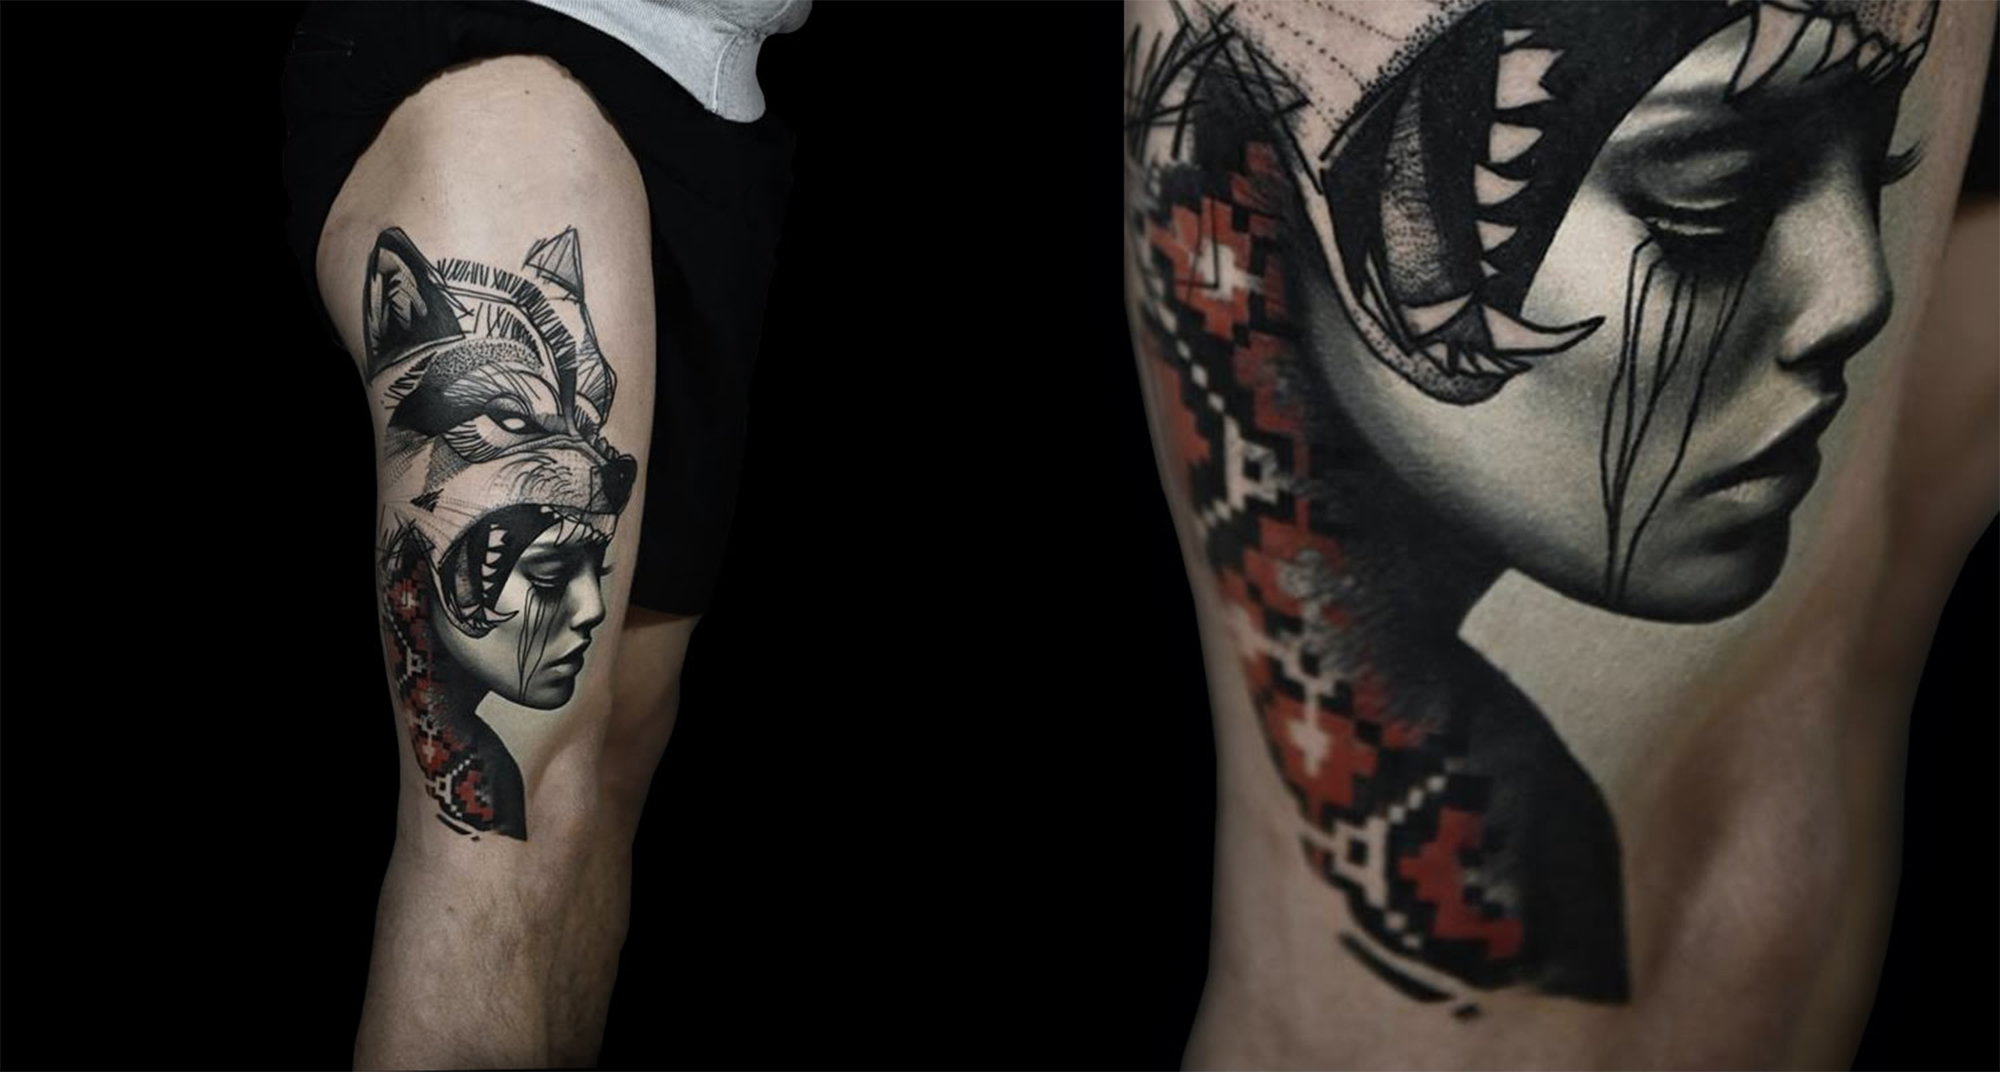 10 Tattooers To Look Out For In 2015 | Scene360